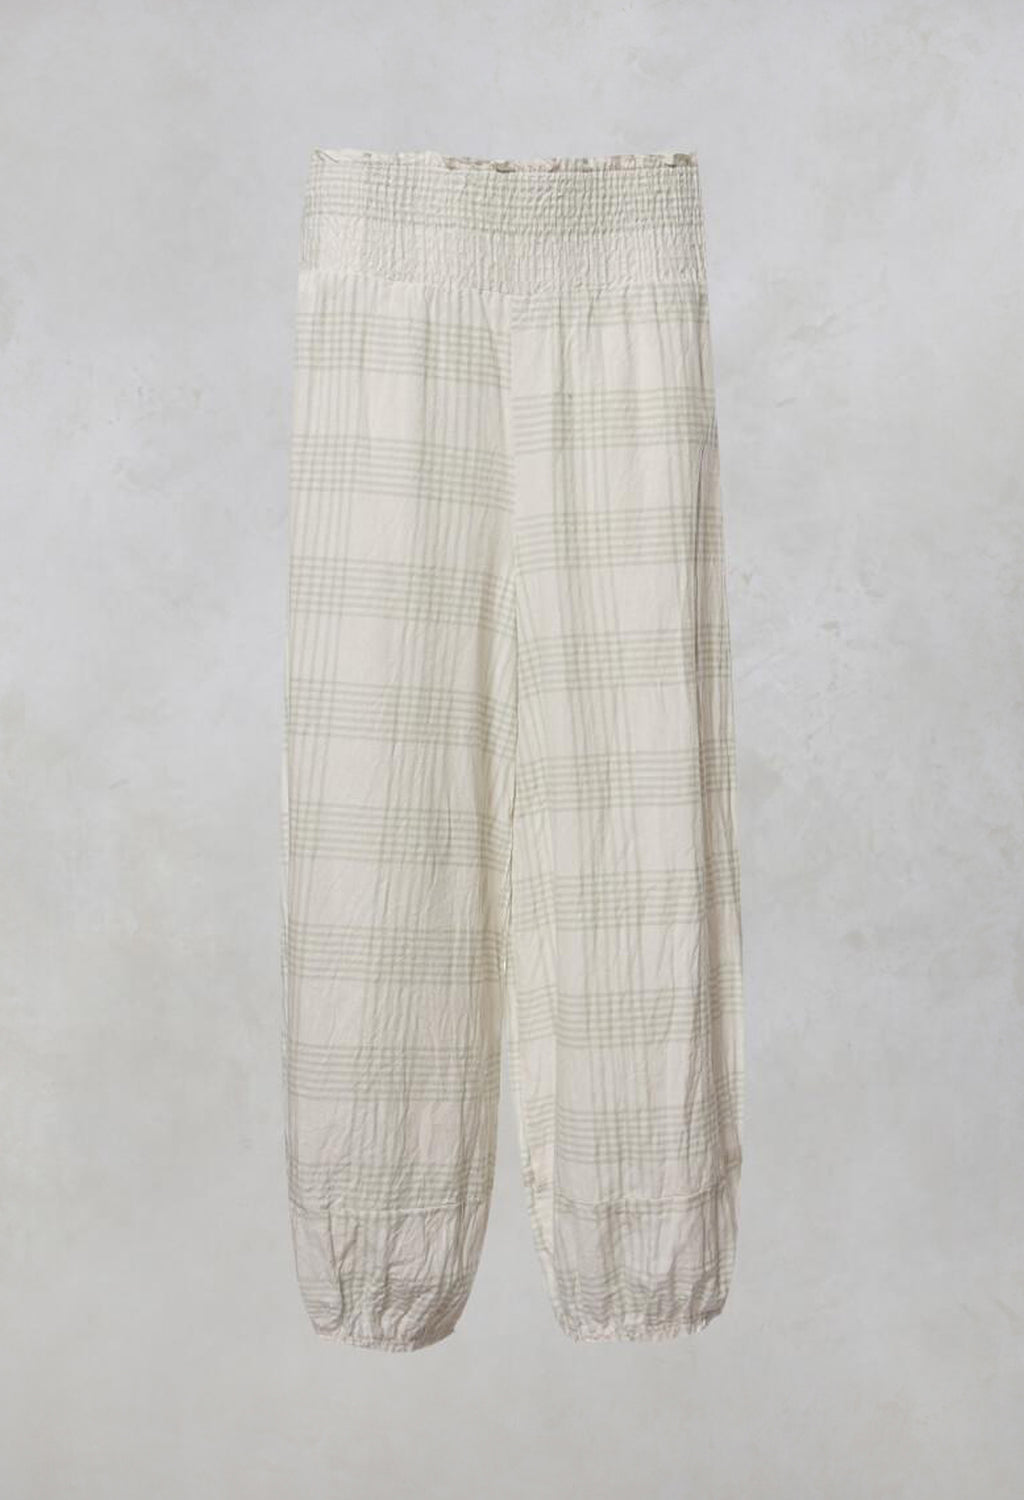 Gus Trousers with Elasticated Hem in Coton Carreaux Vert Eau